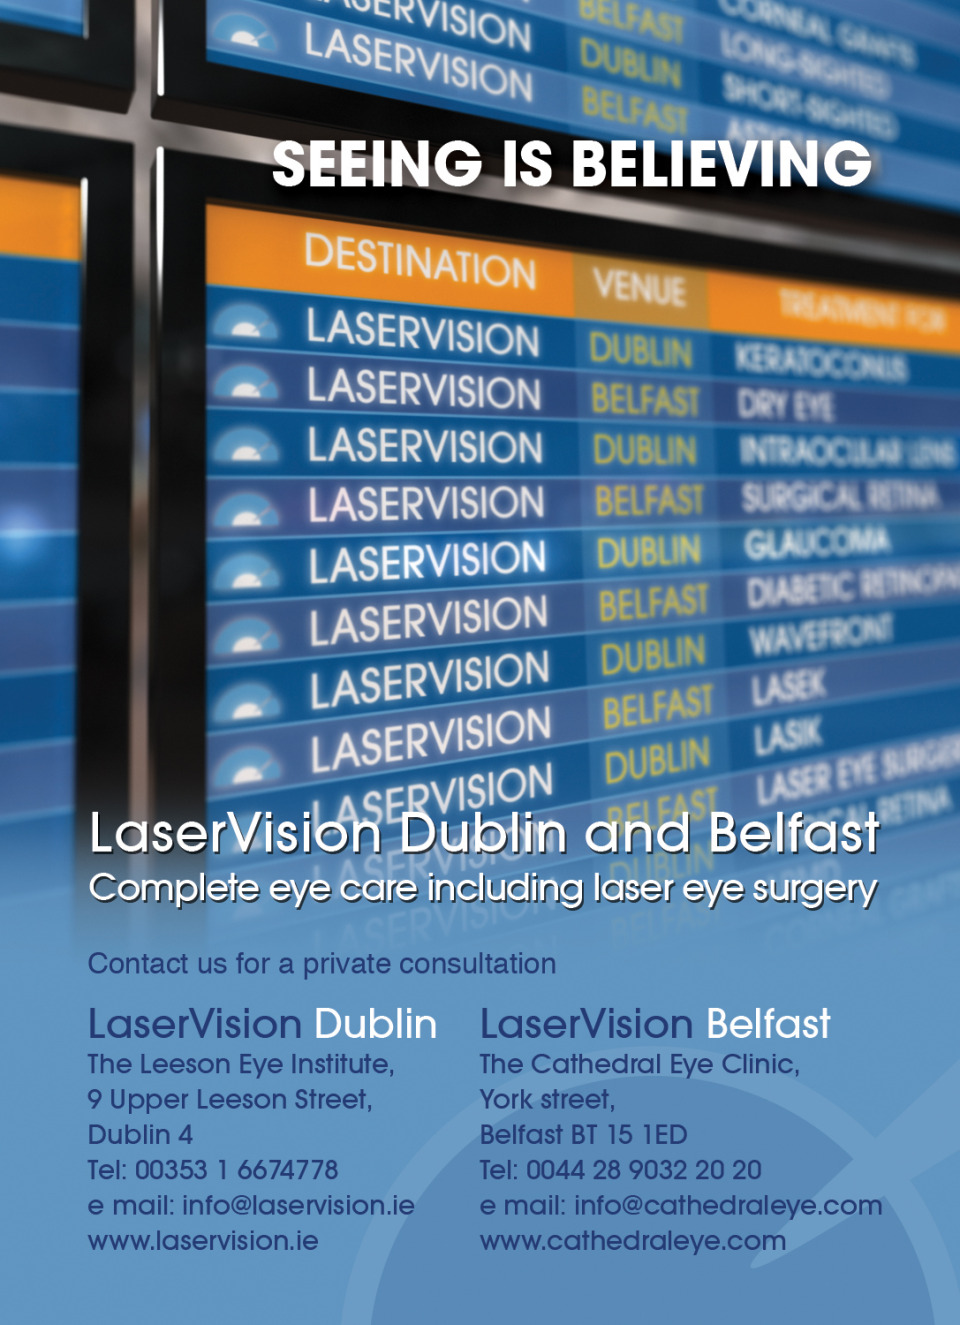 Aer Lingus Magazine Ad for LaserVision Dublin